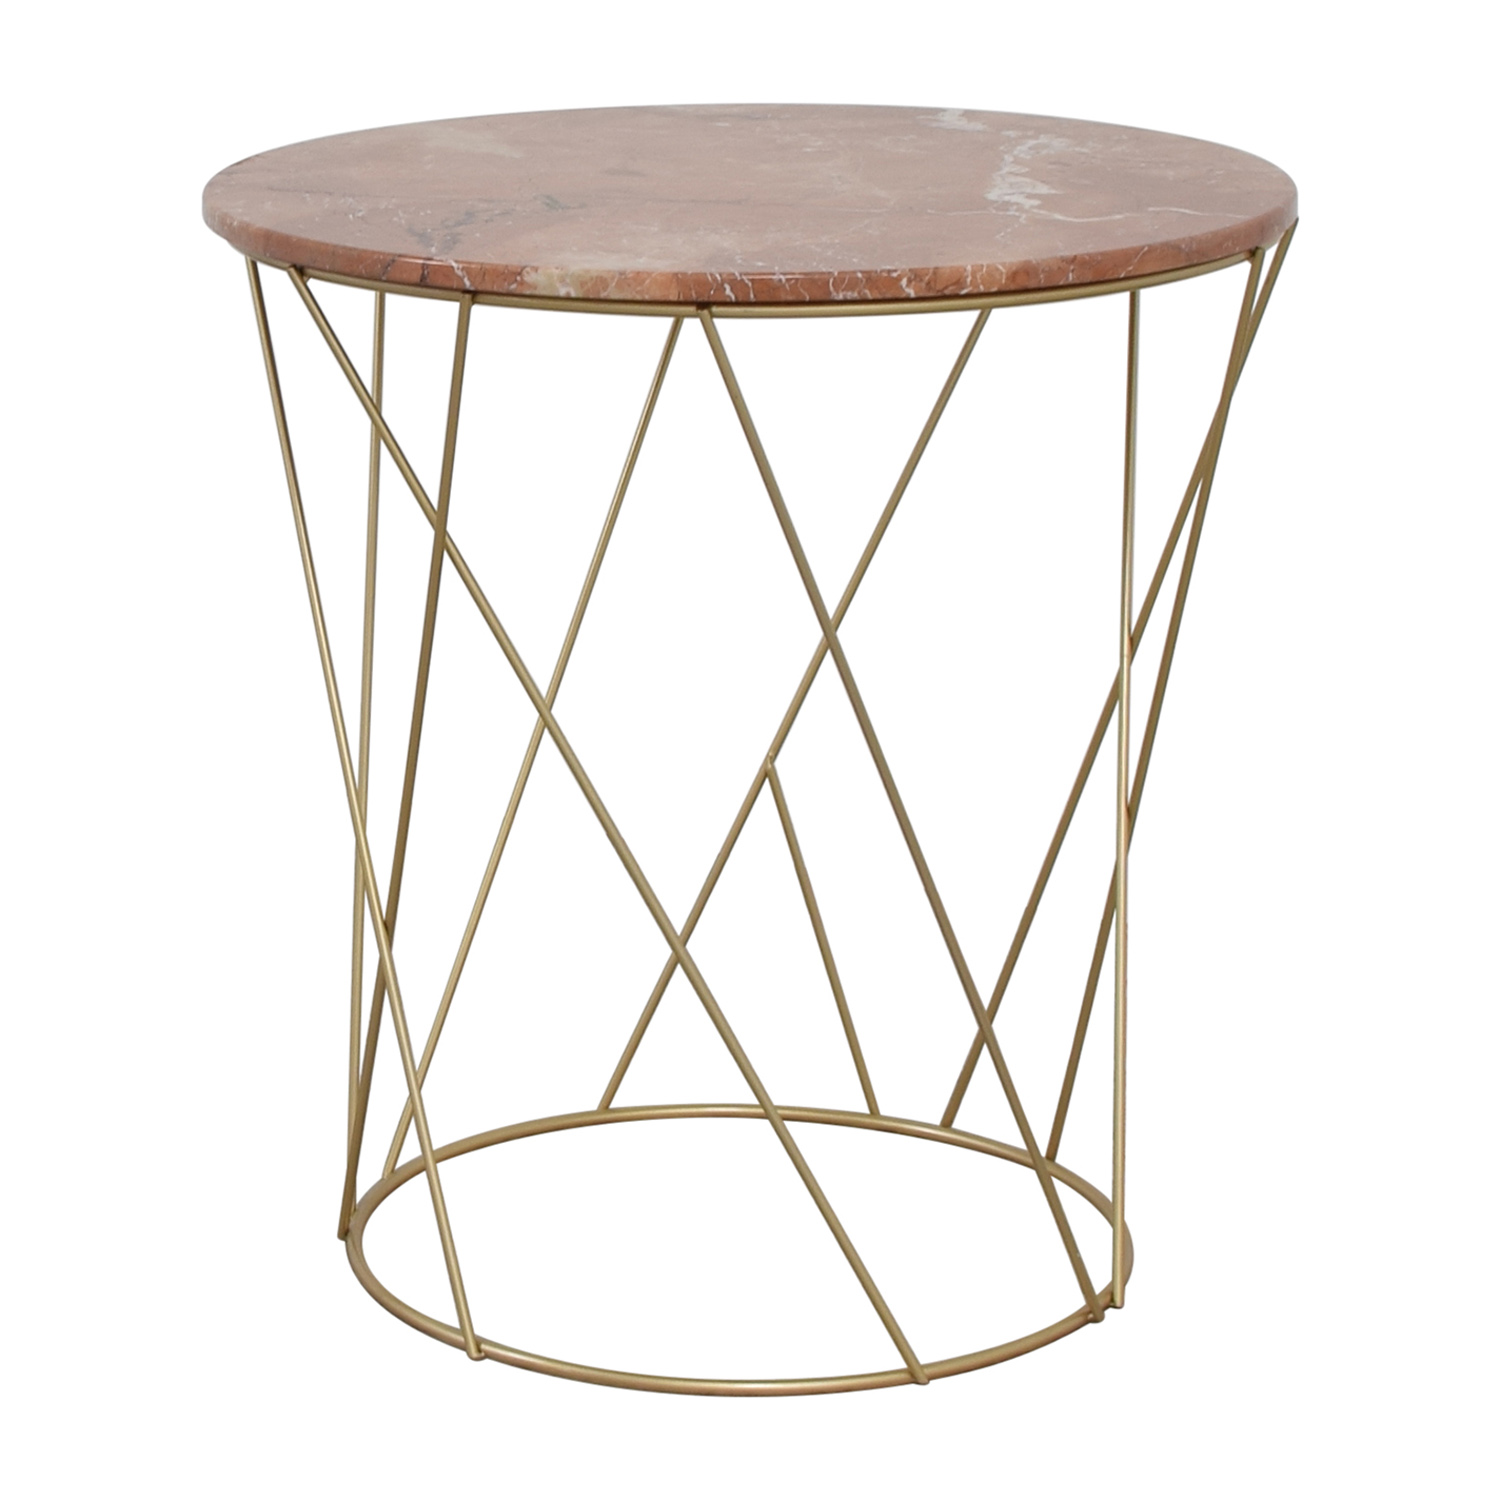 90 off lotus lotus pink gold round marble table tables for Round gold side table